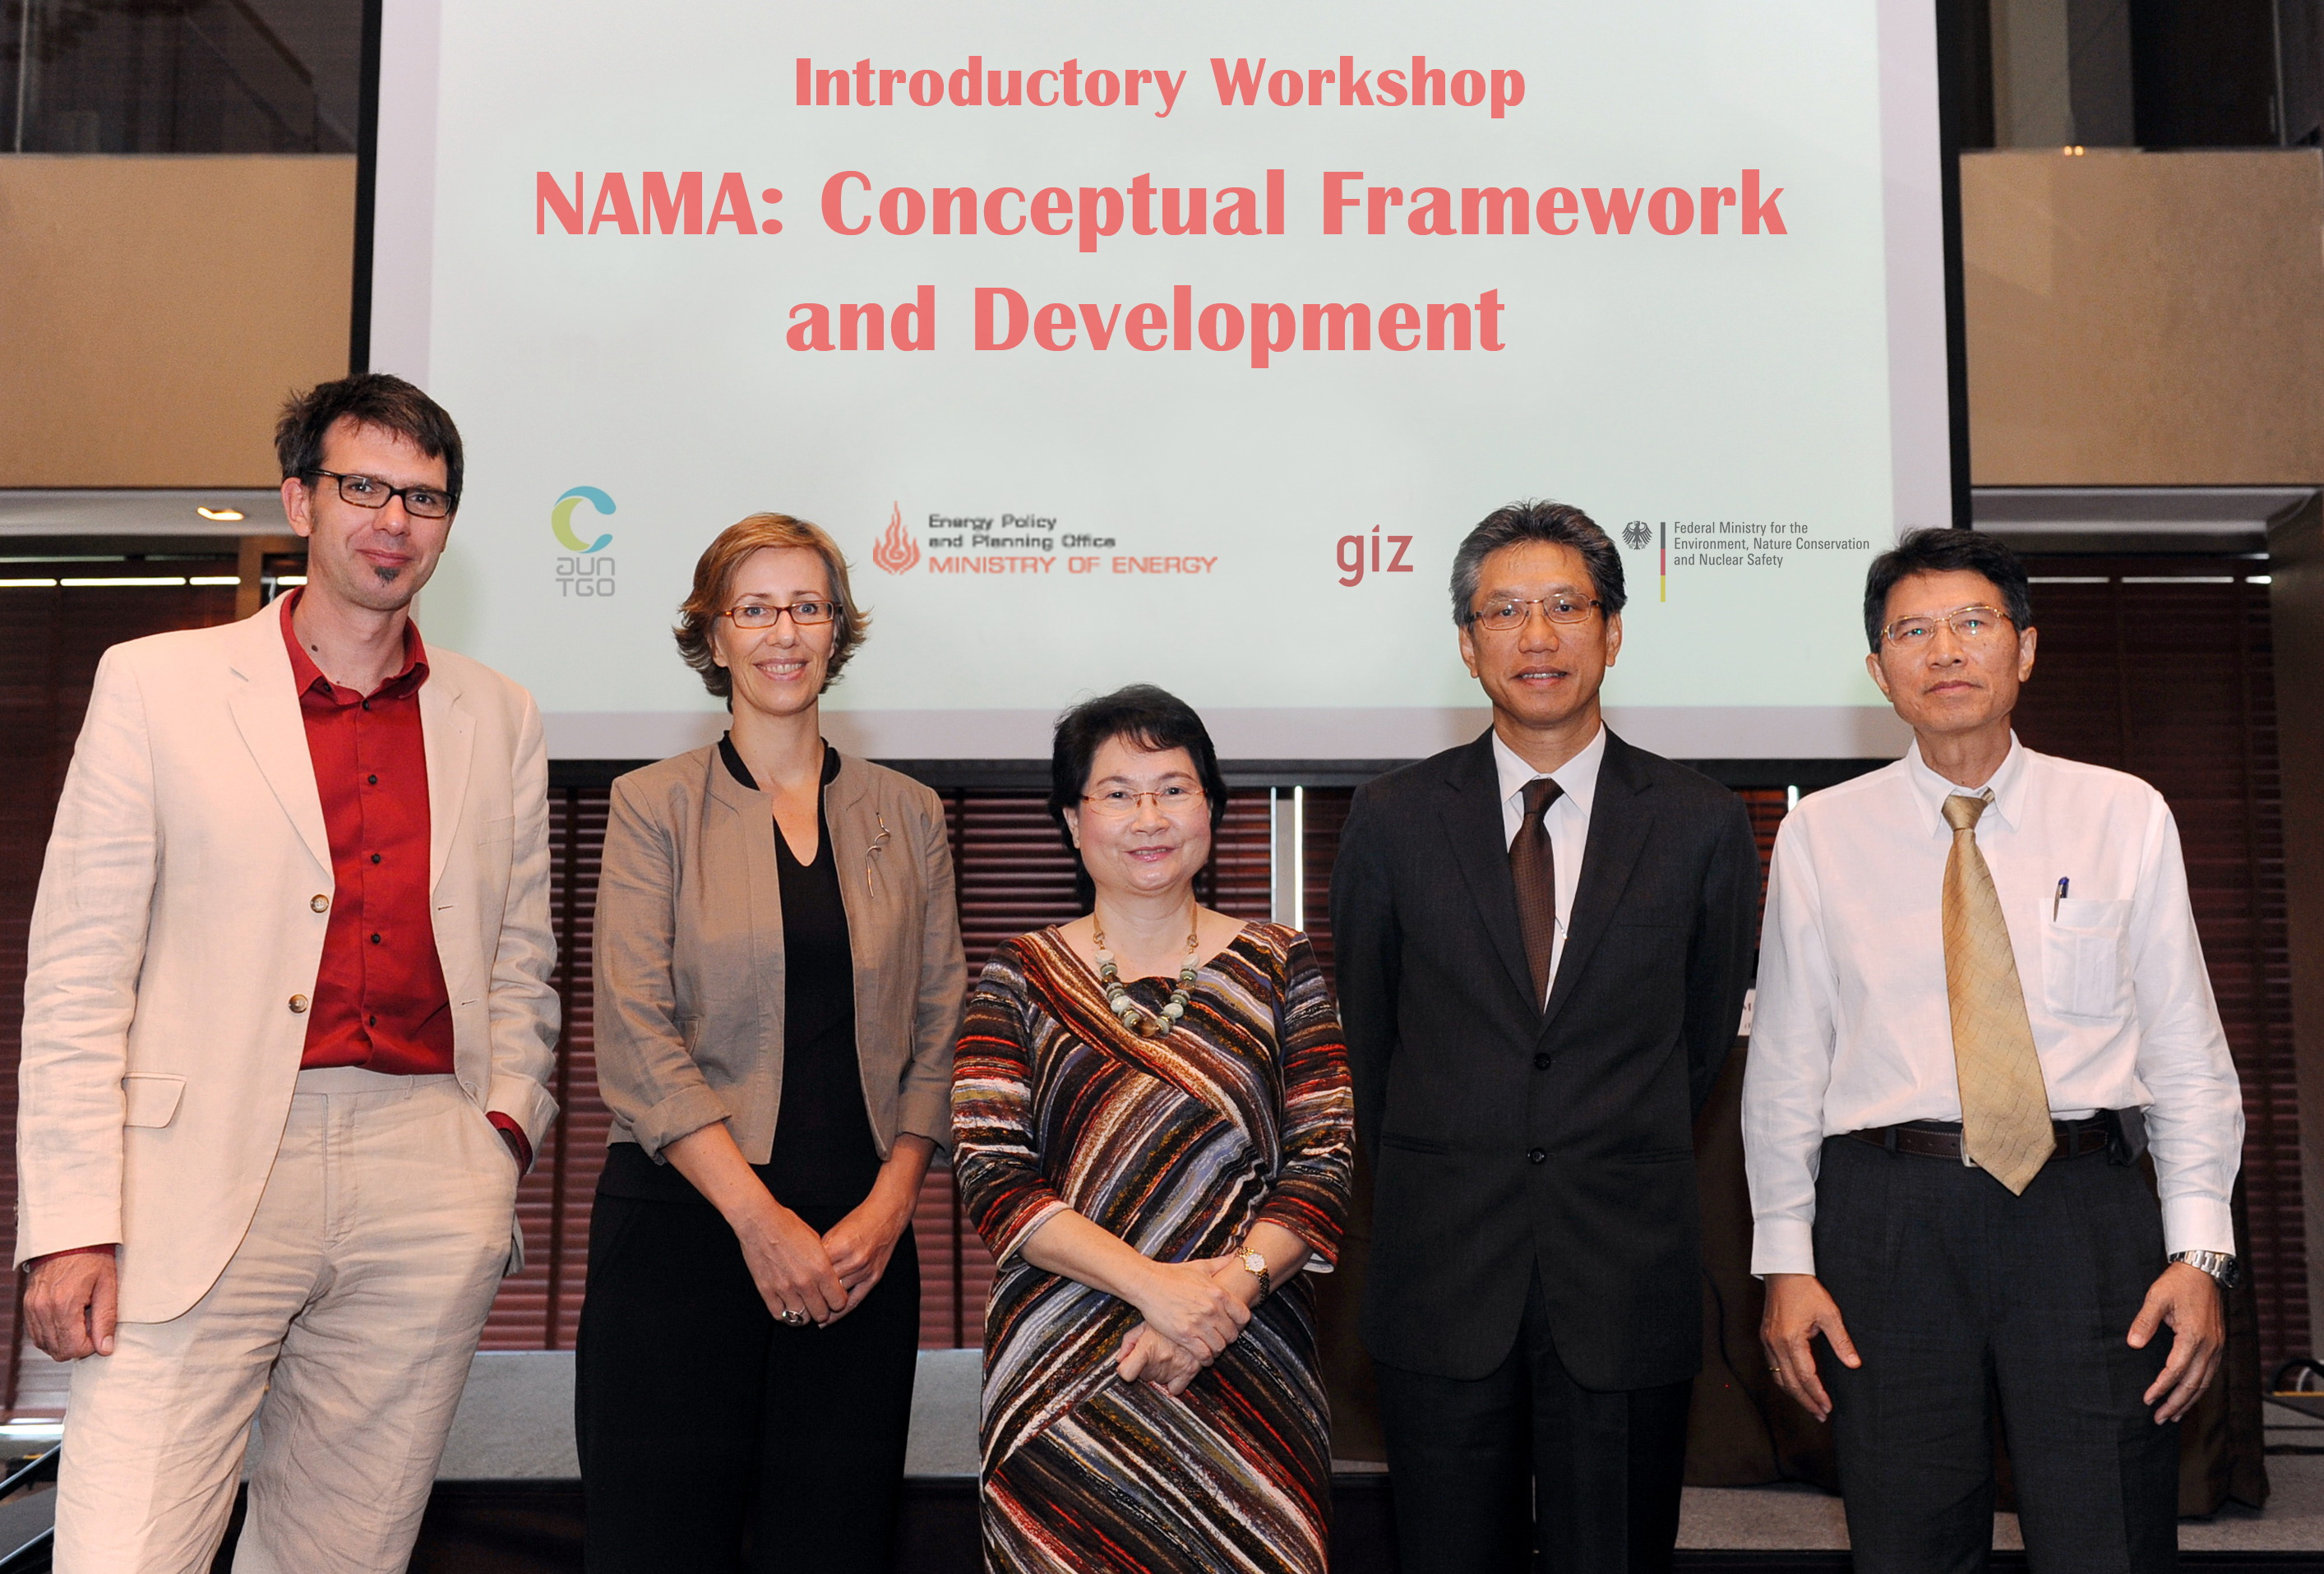 Introductory Workshop - NAMA: Conceptual Framework and Development